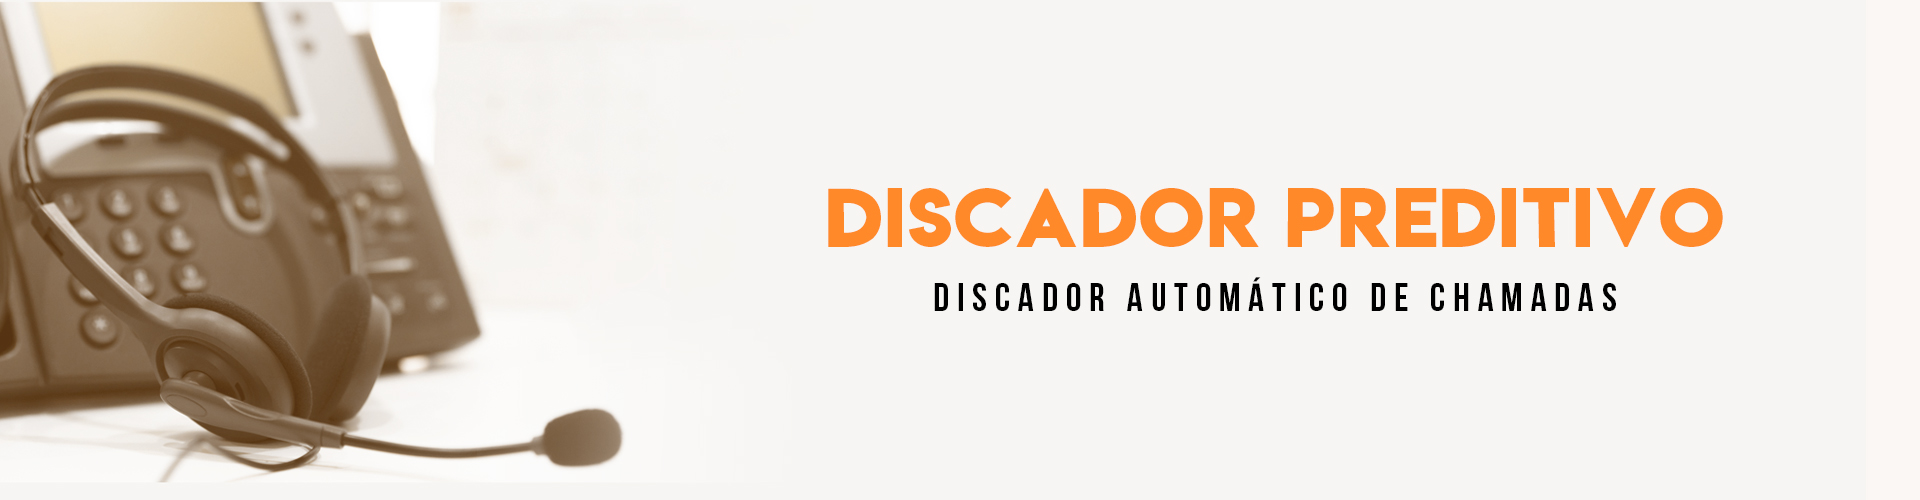 Call Center - Discador Preditivo